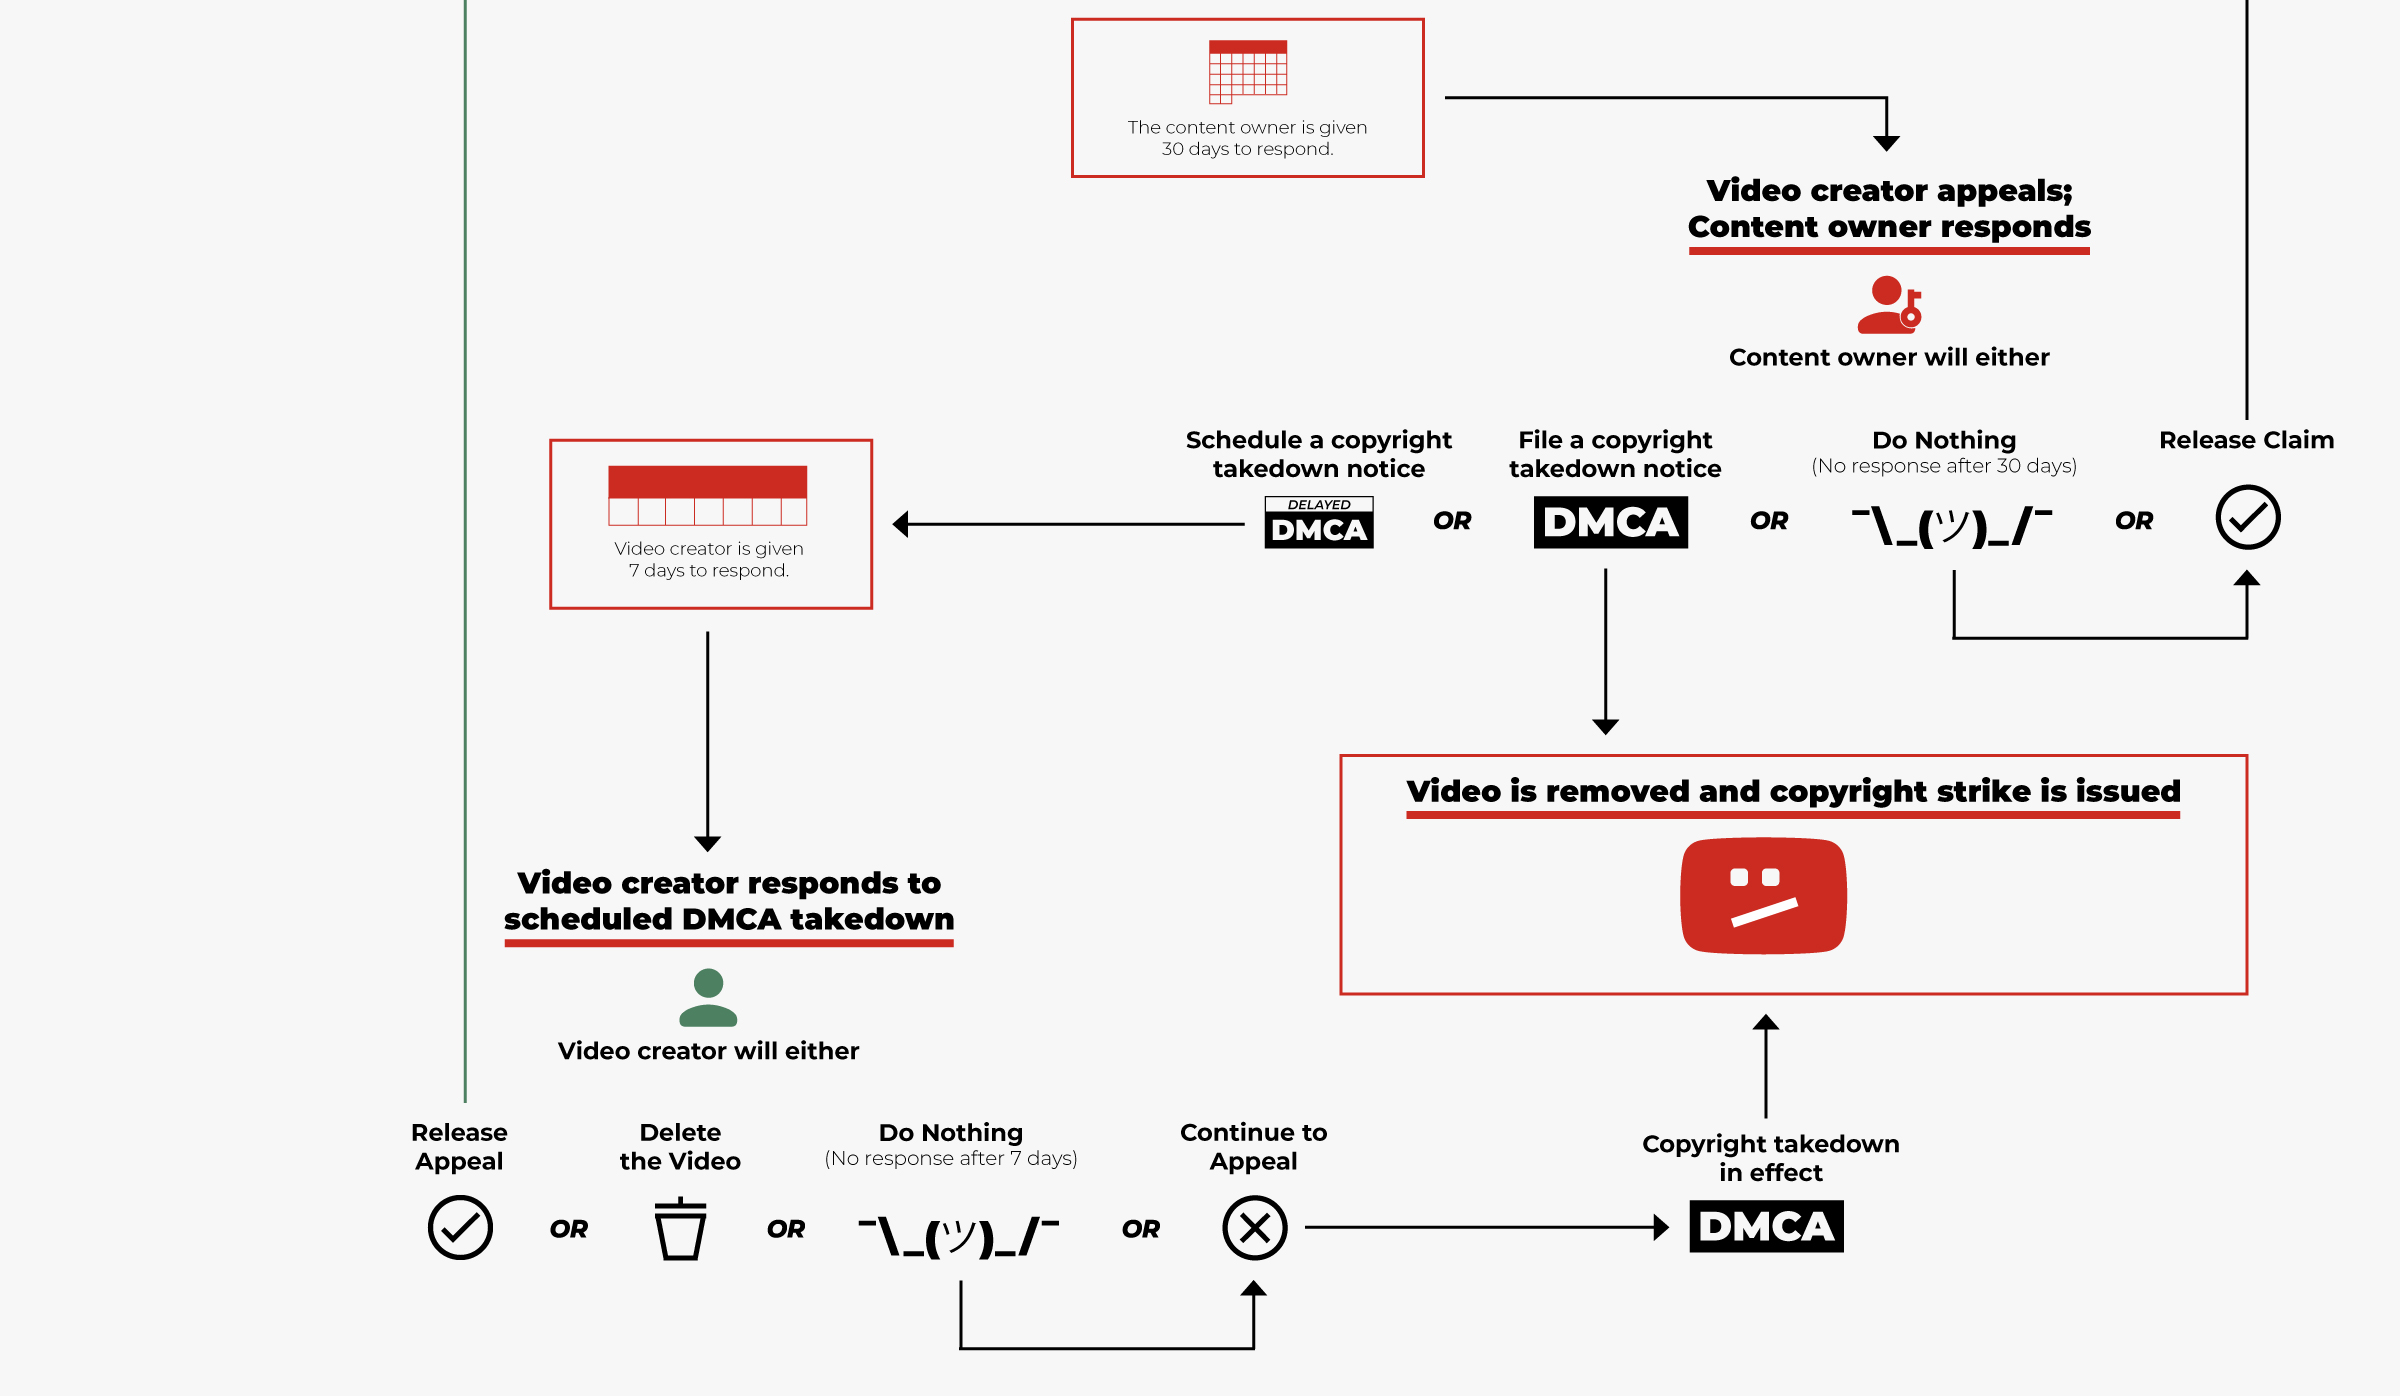 A more complex version of the chart, showing the back-and-forth between video creators and content creators before a DMCA takedown is issued.